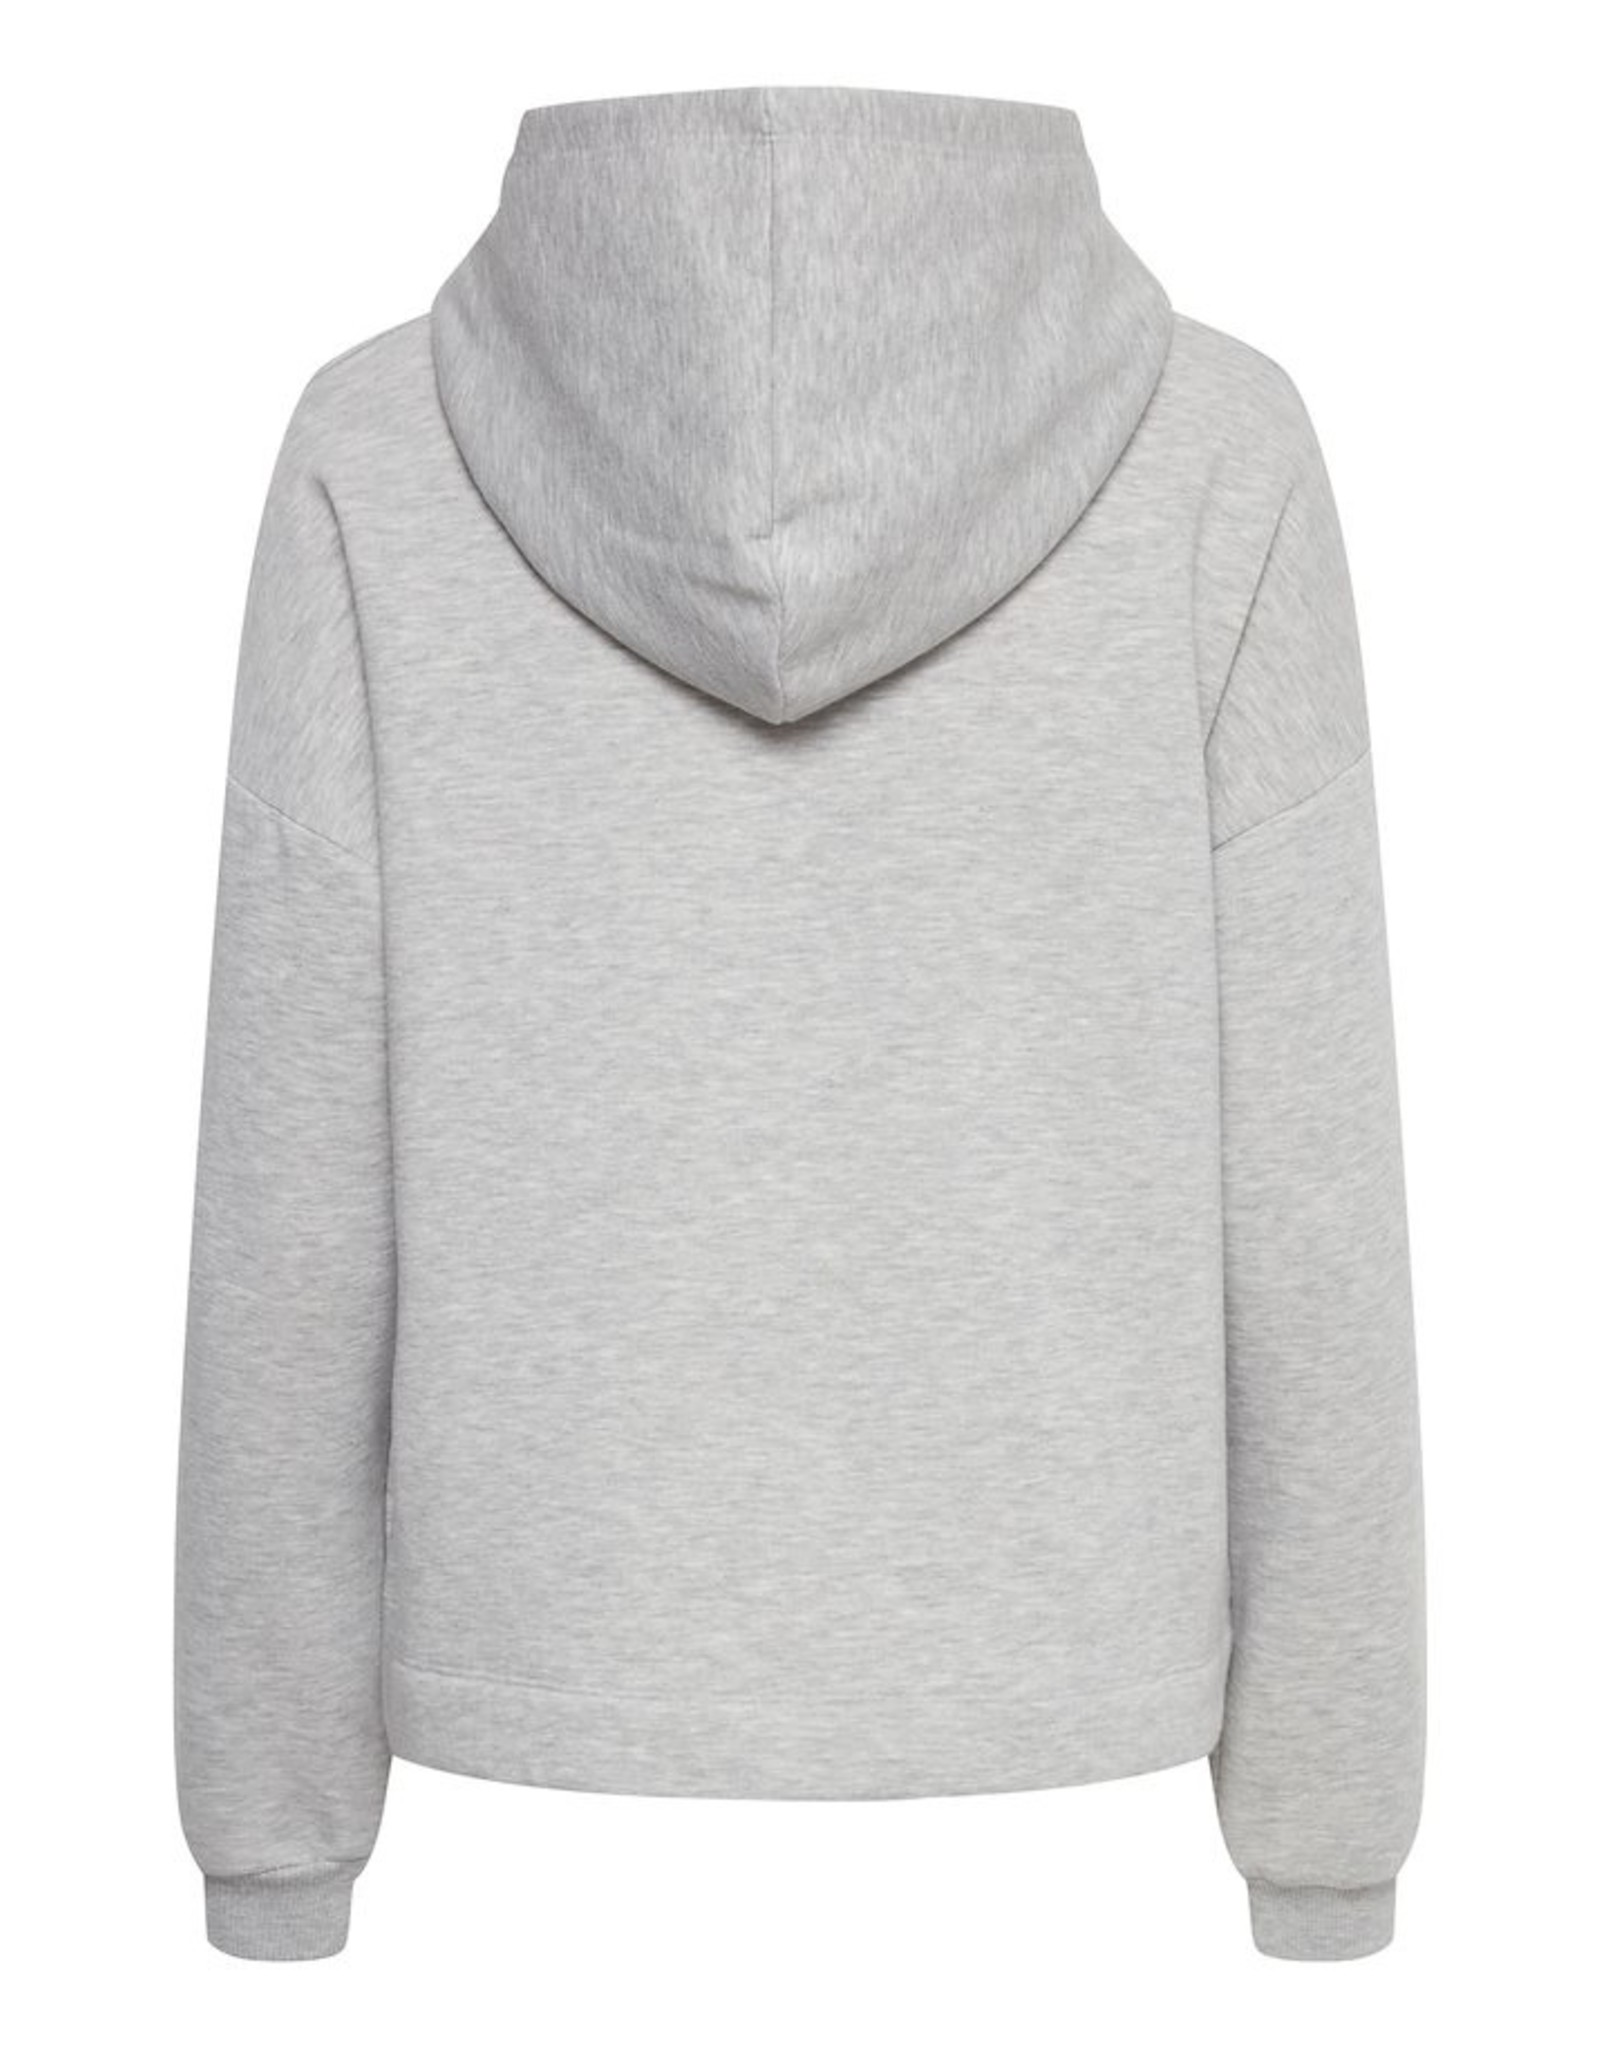 B.YOUNG 20810533 HOODIE